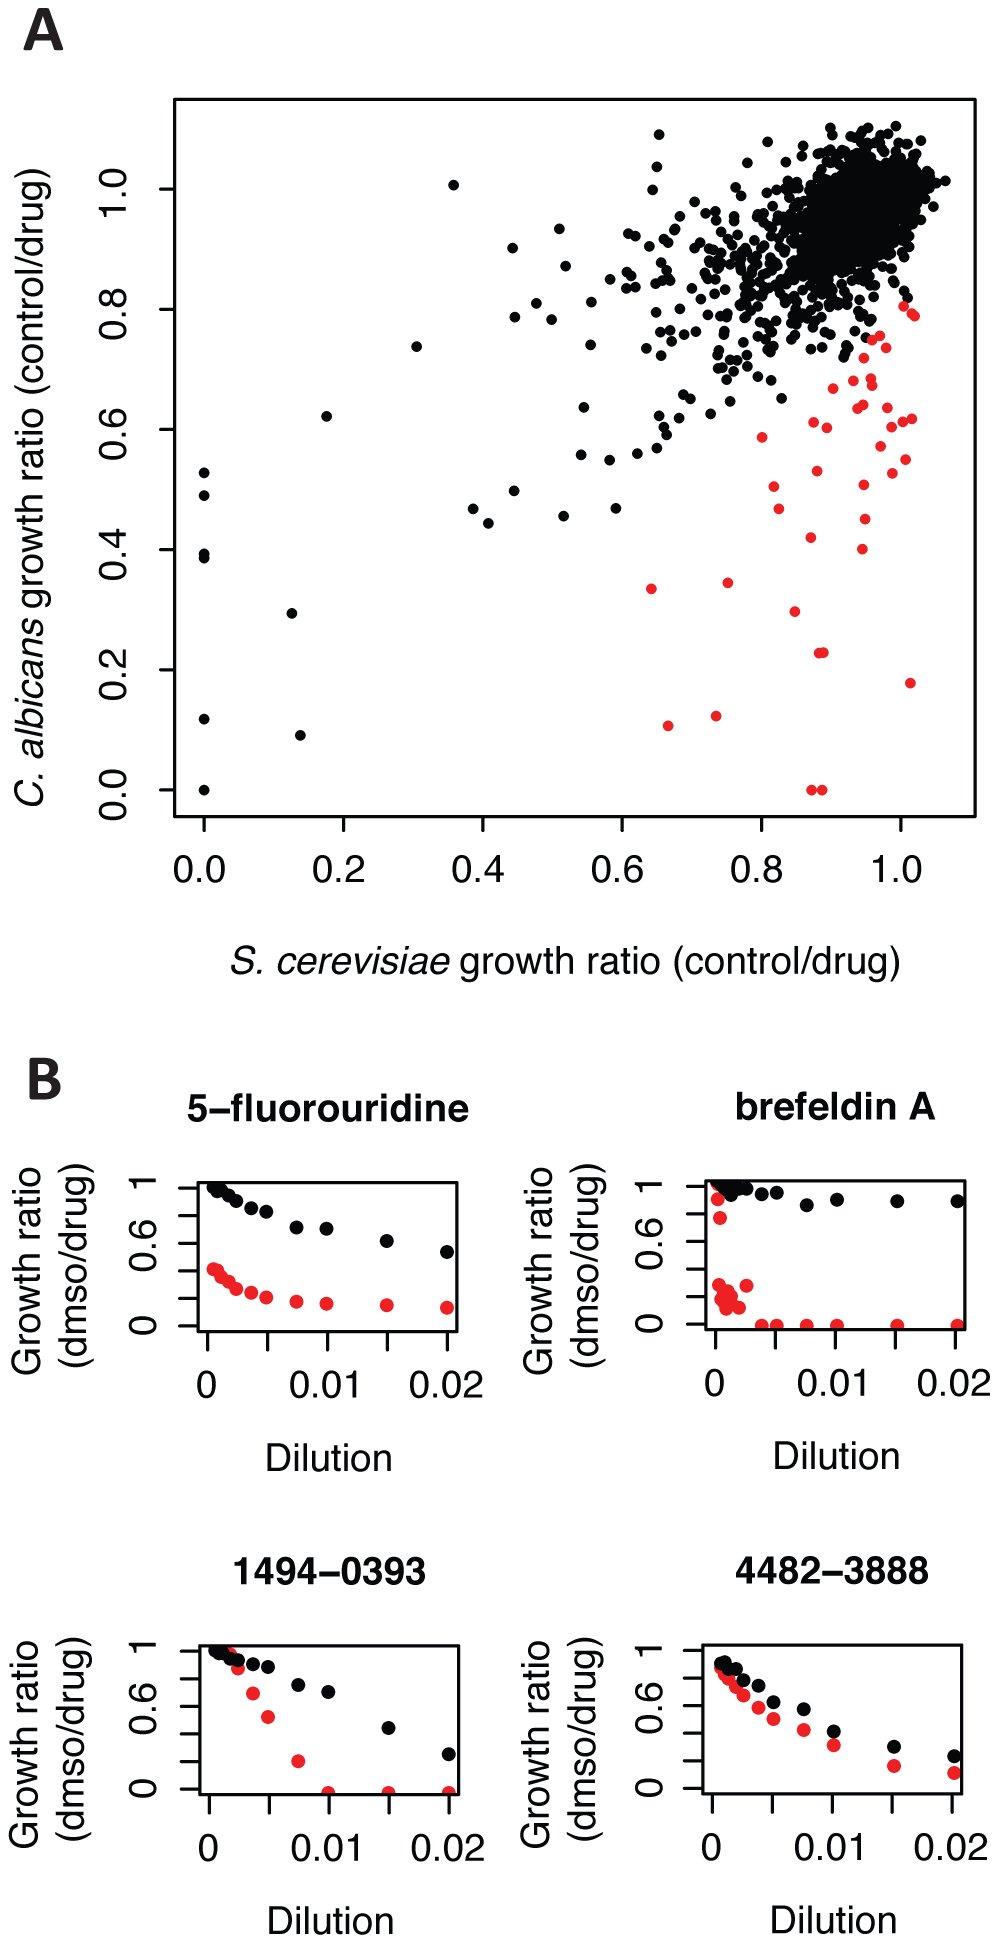 Several compounds have different inhibitory activity in <i>C. albicans</i> versus <i>S. cerevisiae</i>.